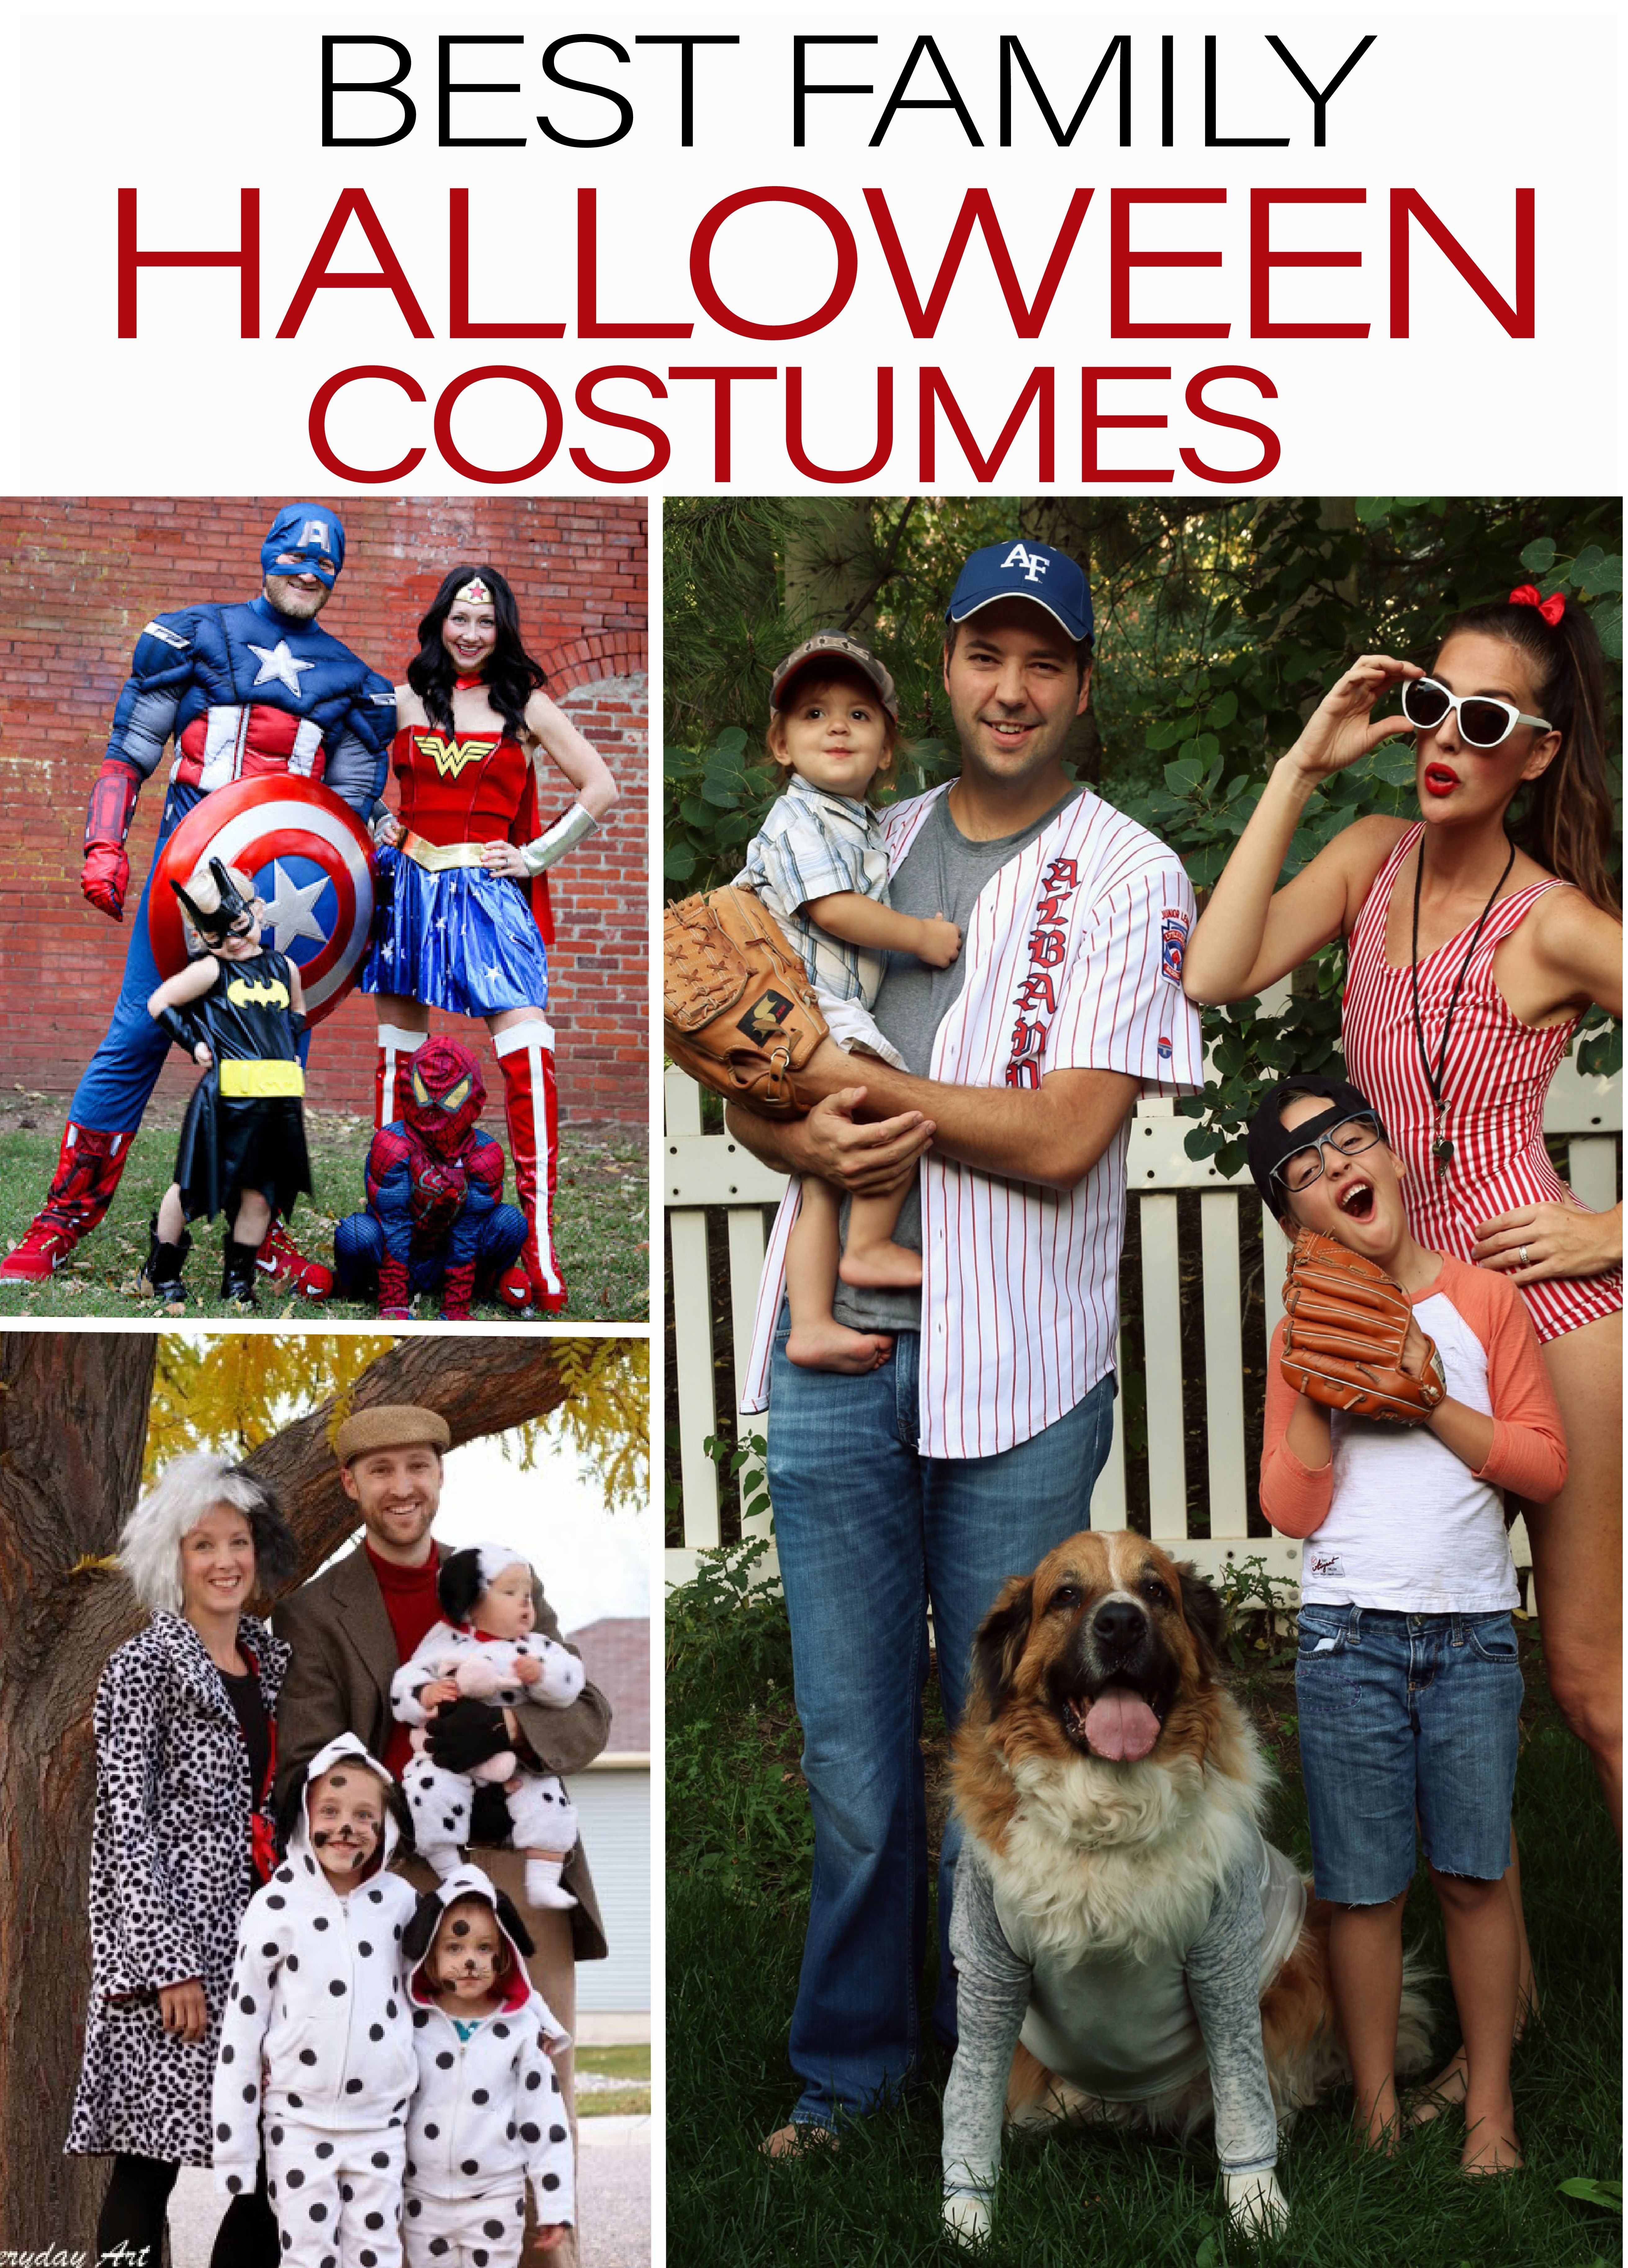 Best family halloween costumes fall decor ideas for the home